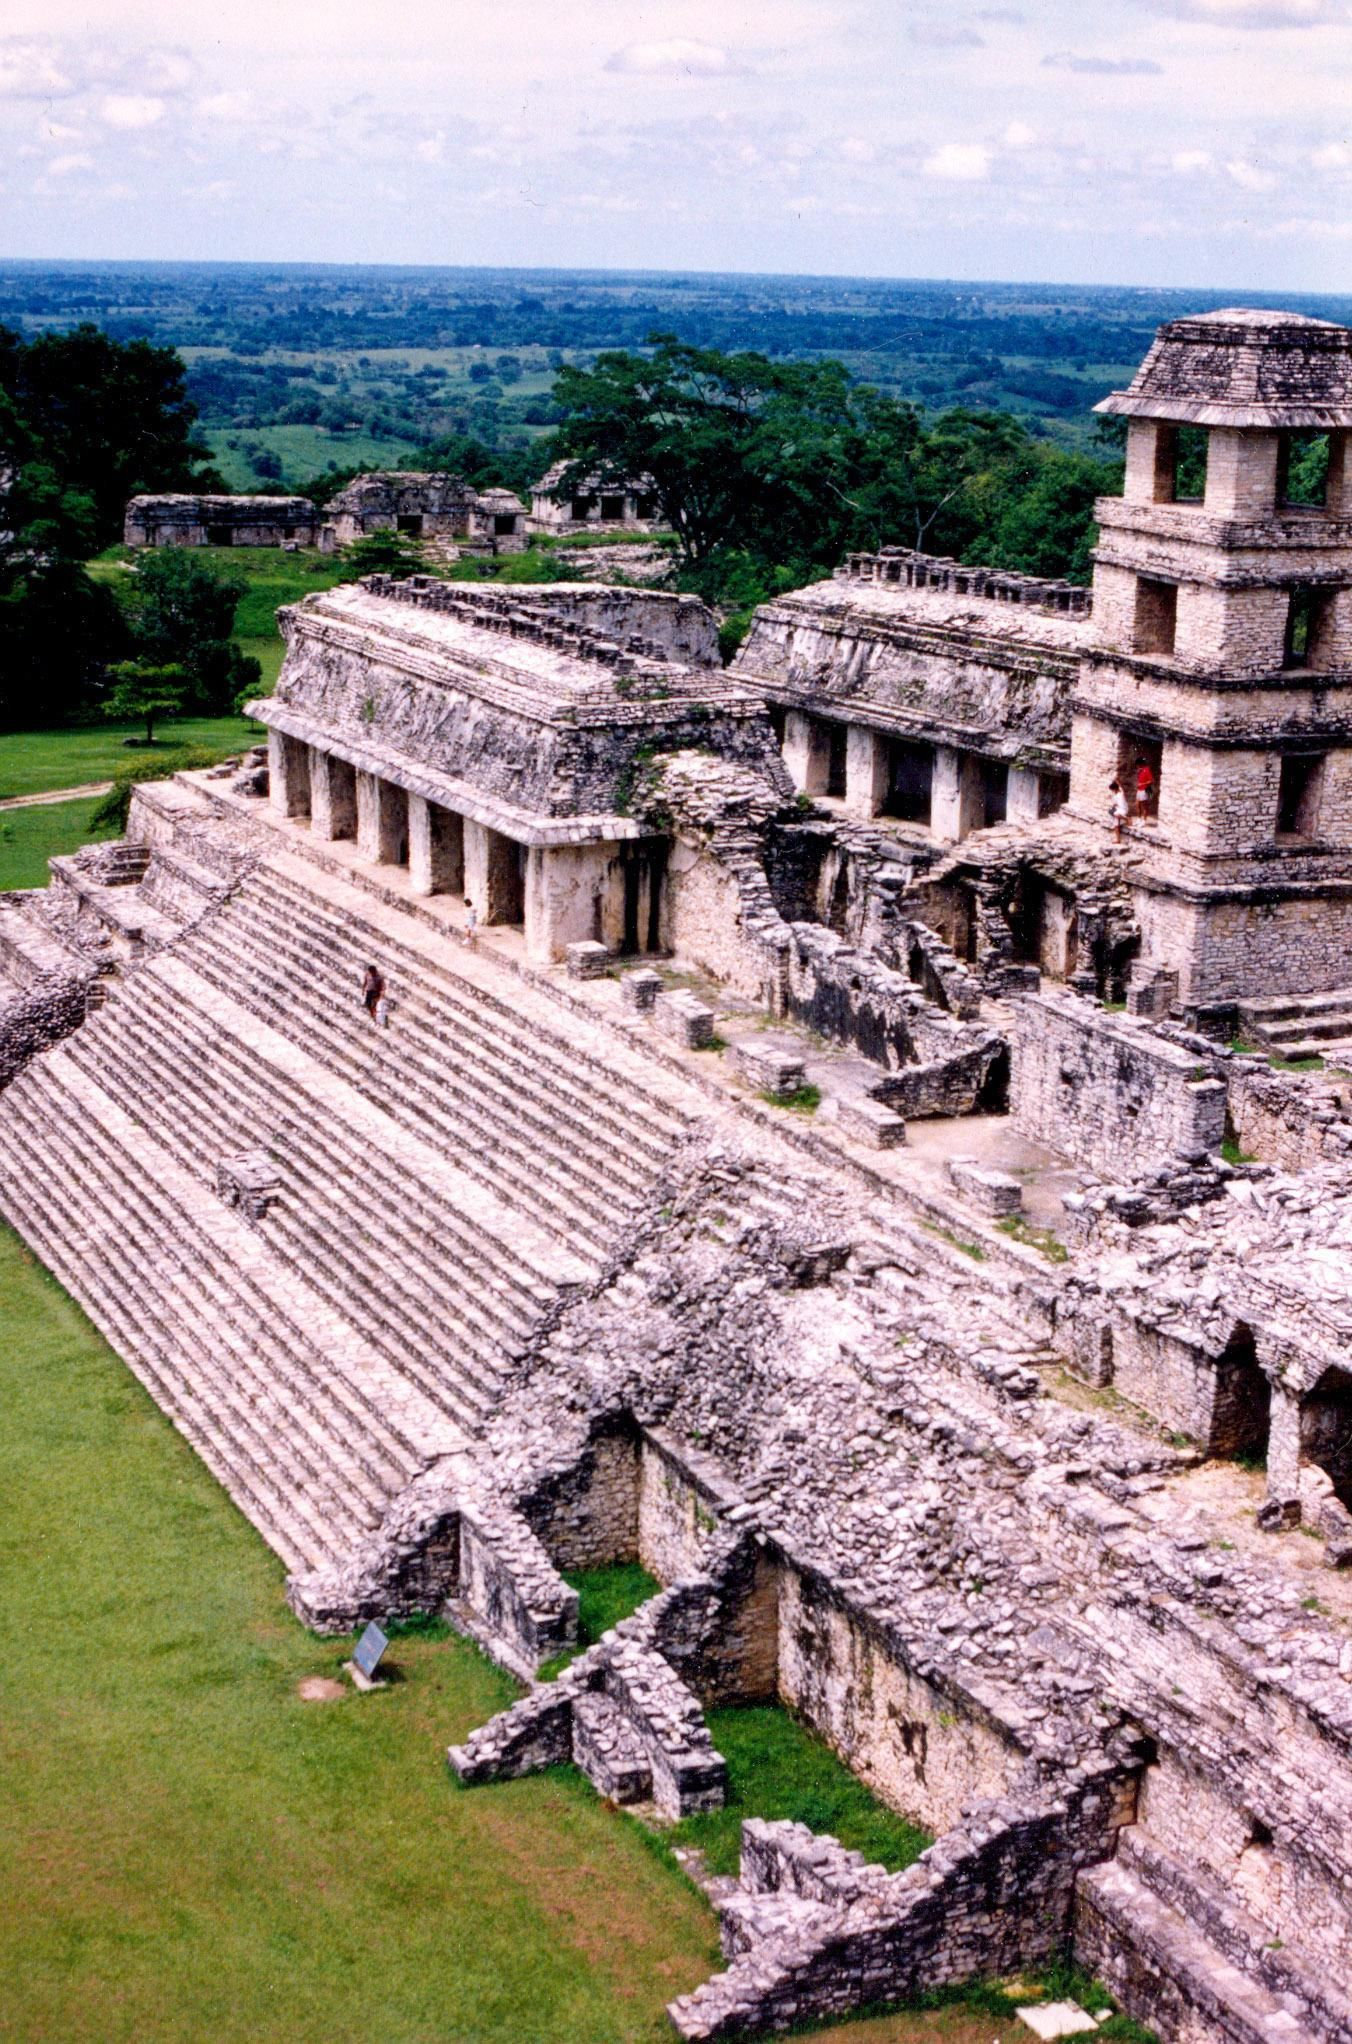 Photo of Palenque, A Photo Gallery by James Q. Jacobs